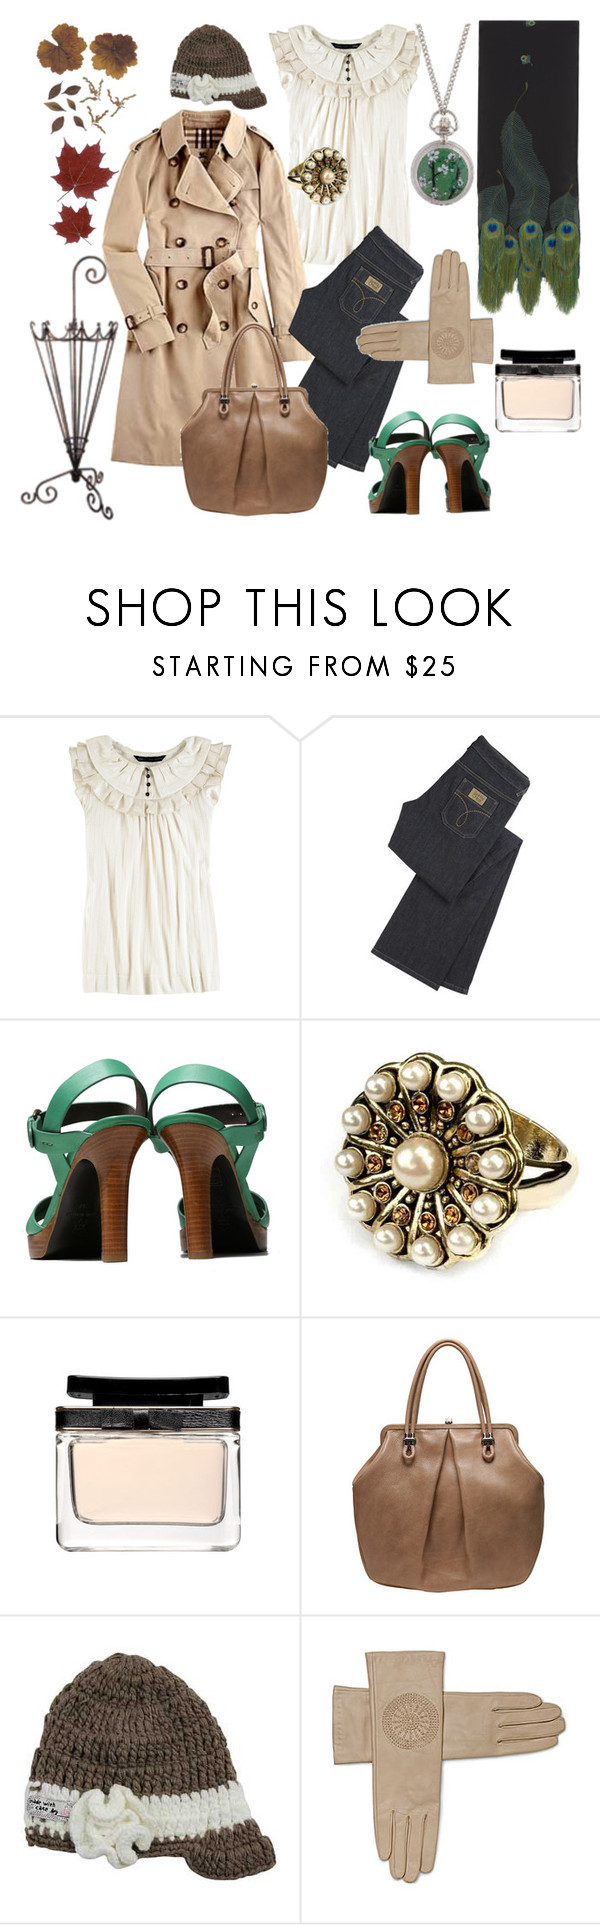 """""""Jane"""" by marcipancic ❤ liked on Polyvore featuring Marc by Marc Jacobs, LULUS, Burberry, See by Chloé, Scorah Pattullo, Monsoon, Marc Jacobs, Alexander McQueen, Volcom and Kenneth Cole"""